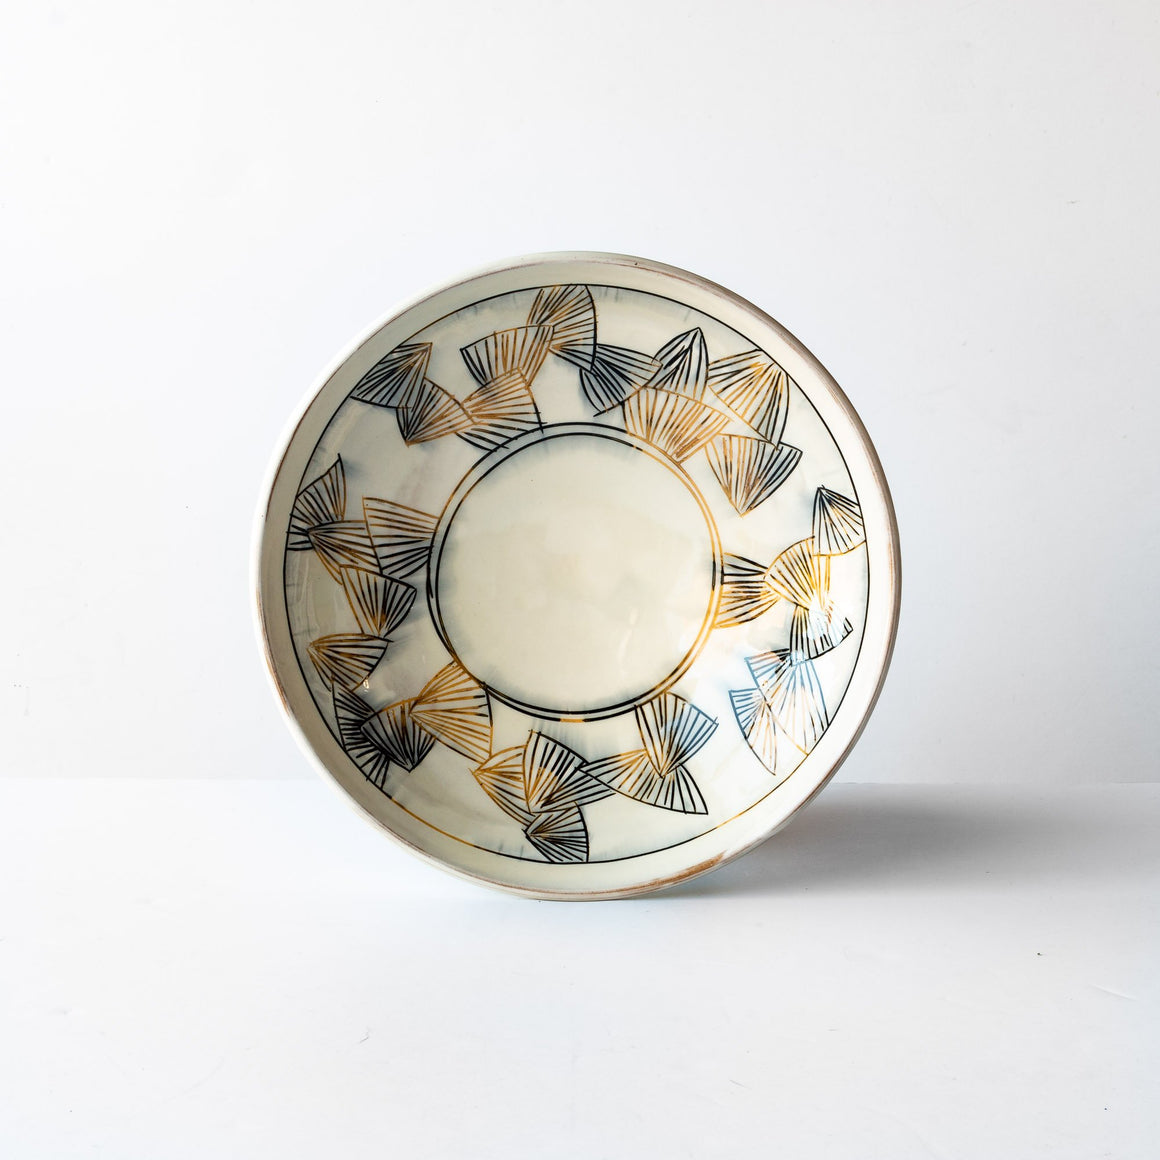 Side View With Flowers - Large Black & Gold Mishima Presentation Bowl - Handmade in Sandstone - Sold by Chic & Basta